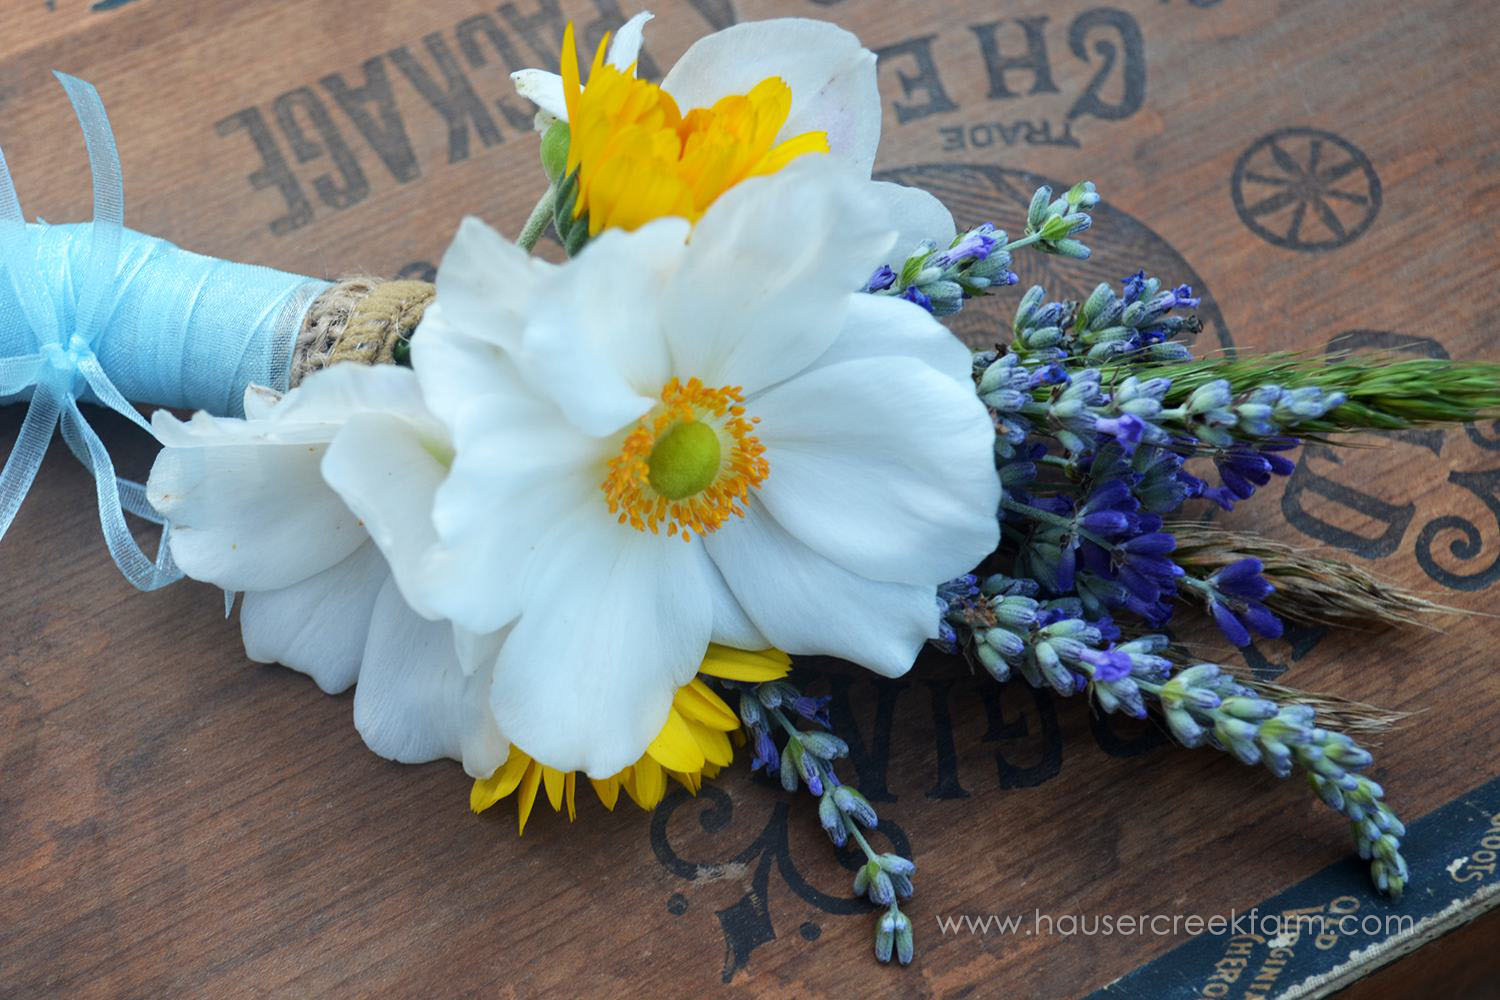 bouquet-of-fresh-flowers-at-baby-shower-for-faye-at-hauser-creek-farm-007-1.jpg